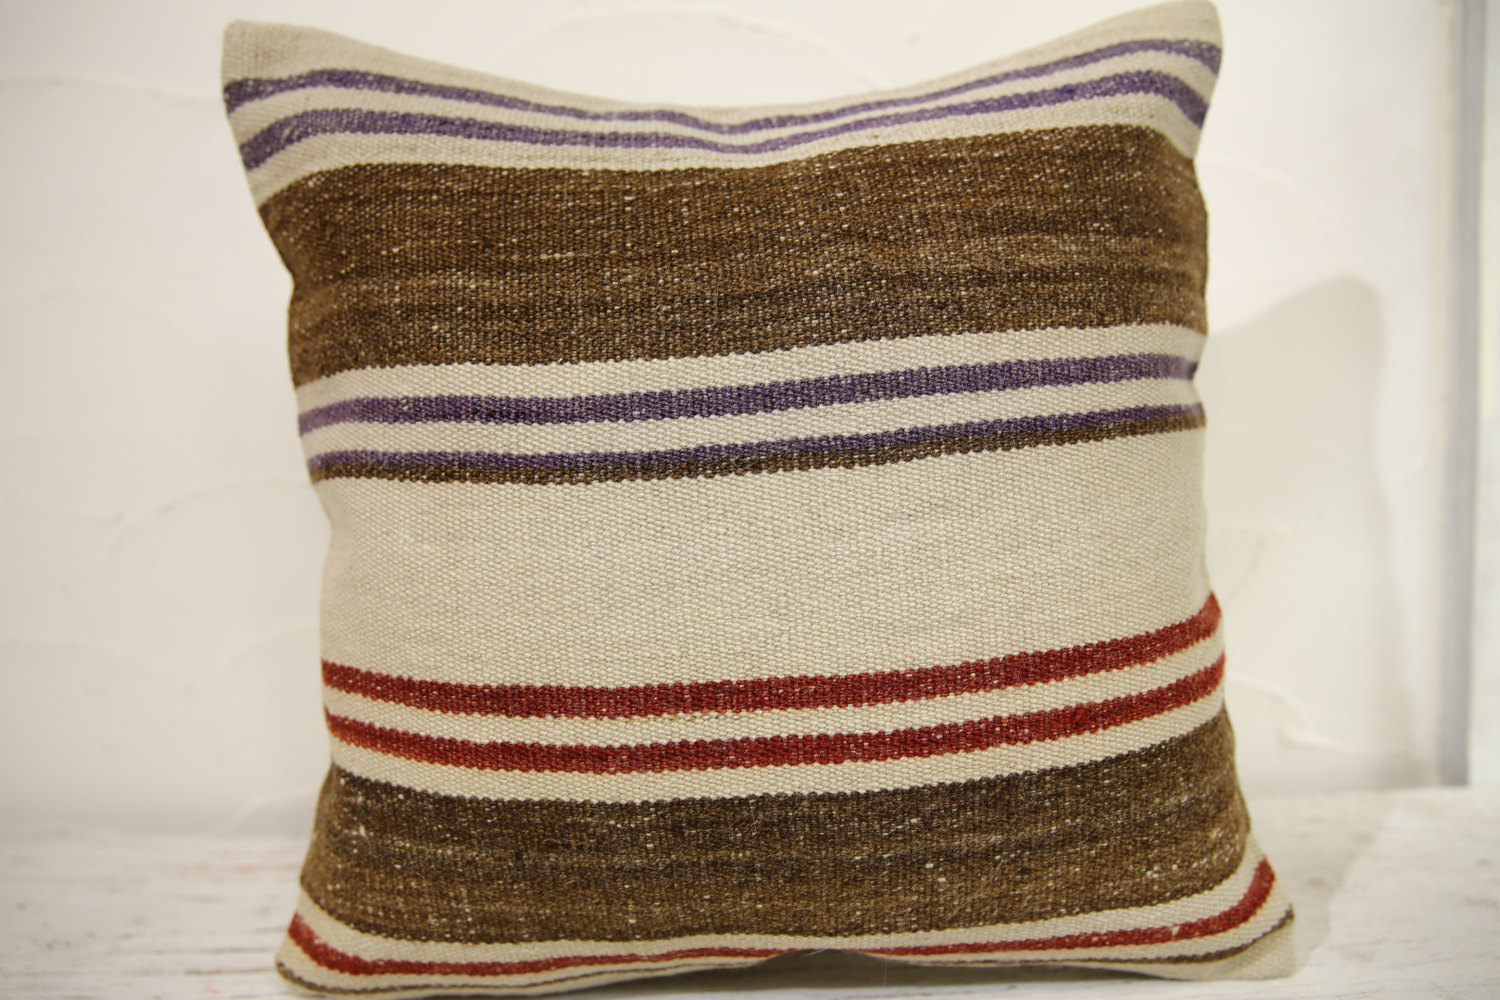 Kilim Pillows | 16x16 | Decorative Pillows | 900 | Accent Pillows , turkish pill